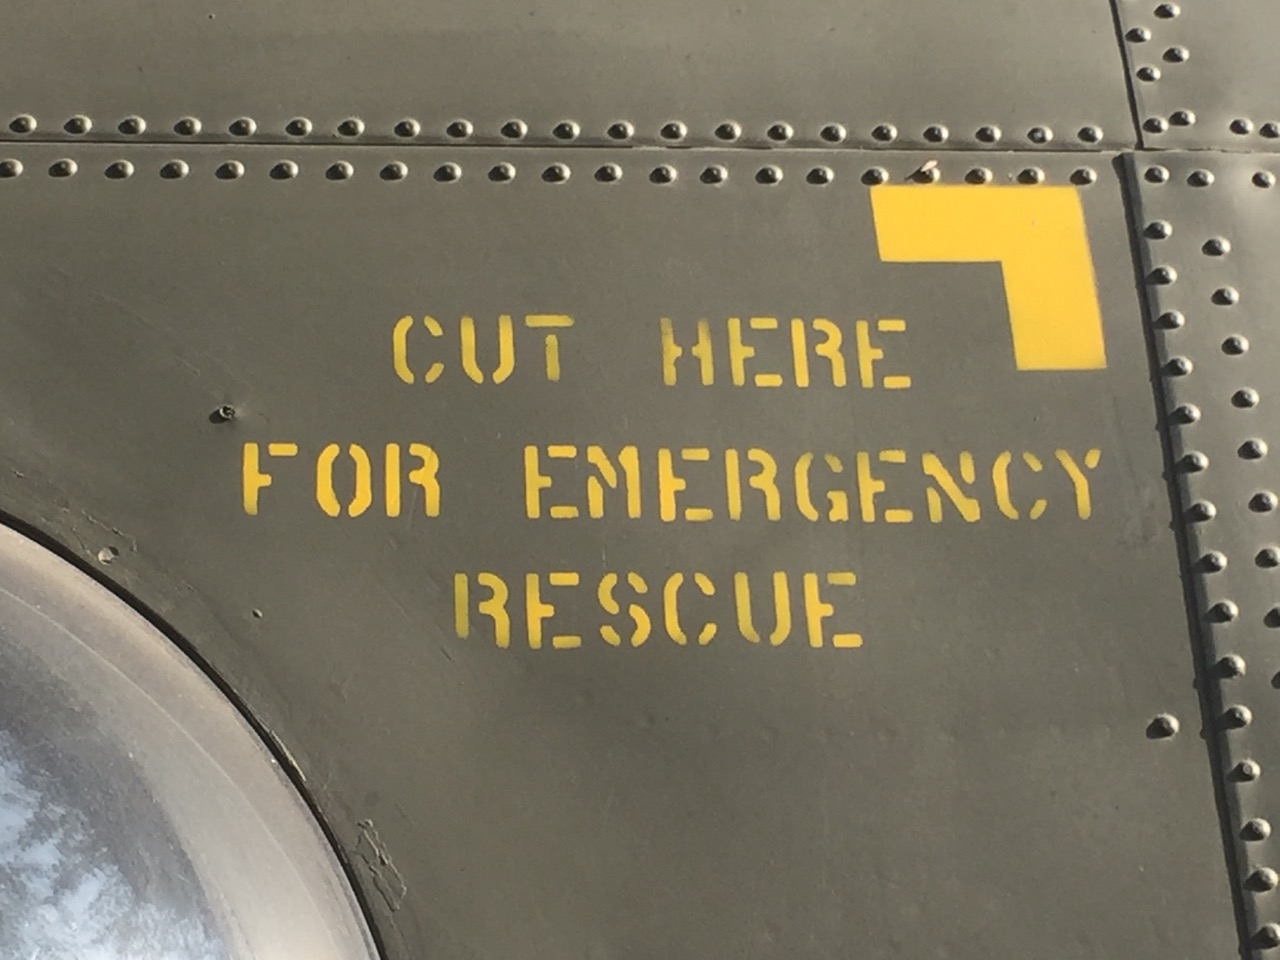 Cut here for emergency rescue